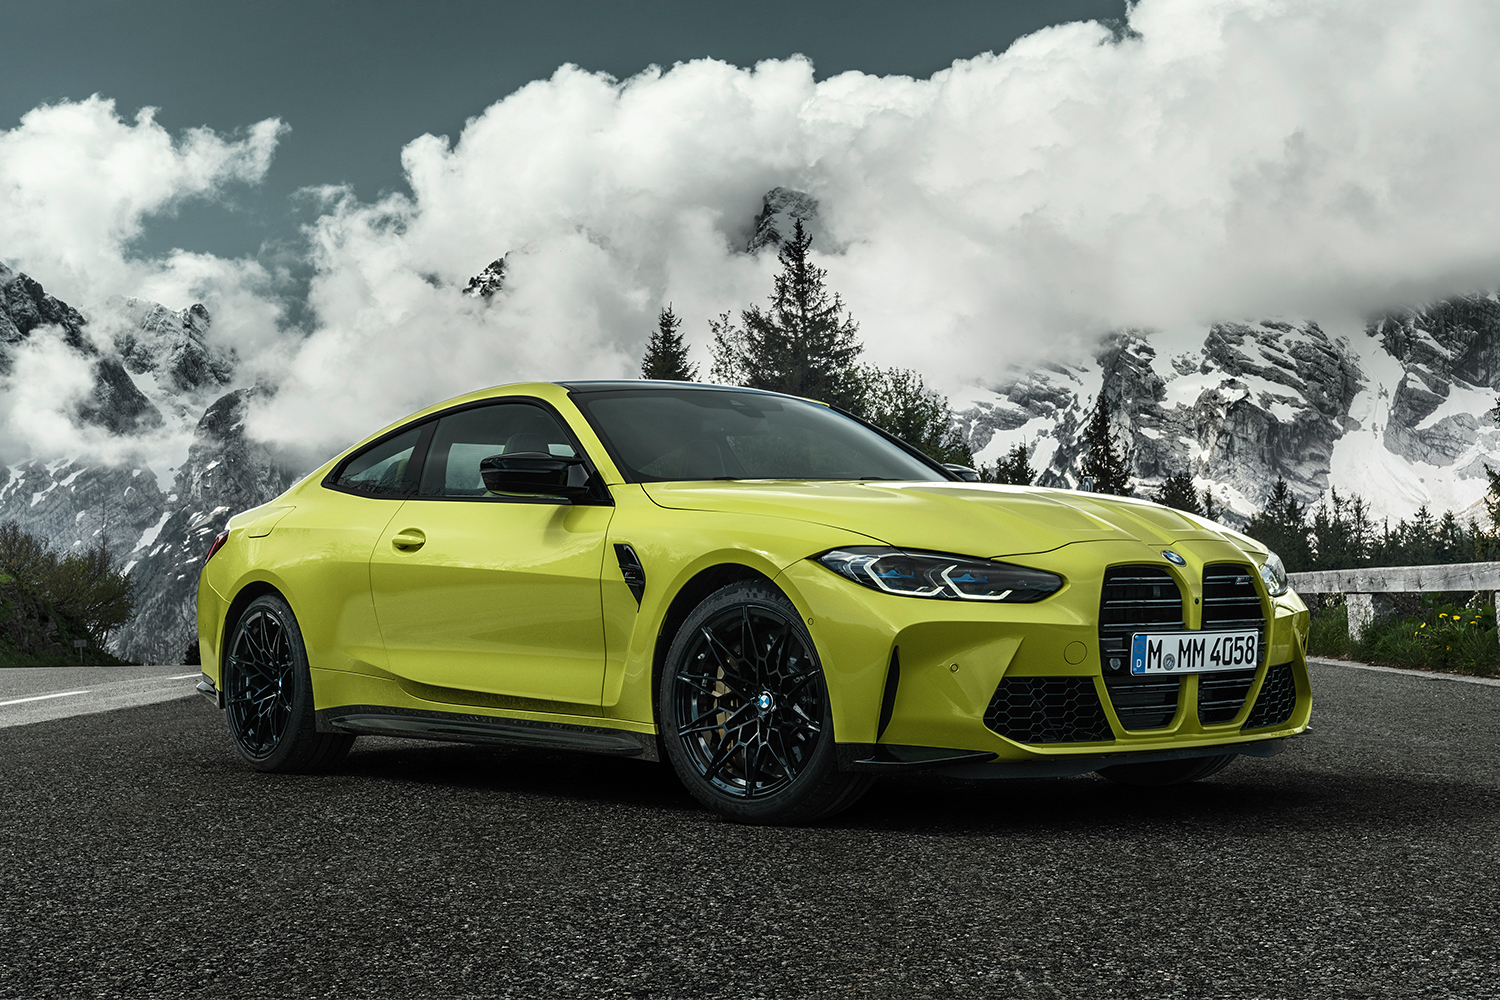 The new BMW M4 Competition Coupé in yellow sits still on the road with snowy mountains and trees at the cloud line in the background